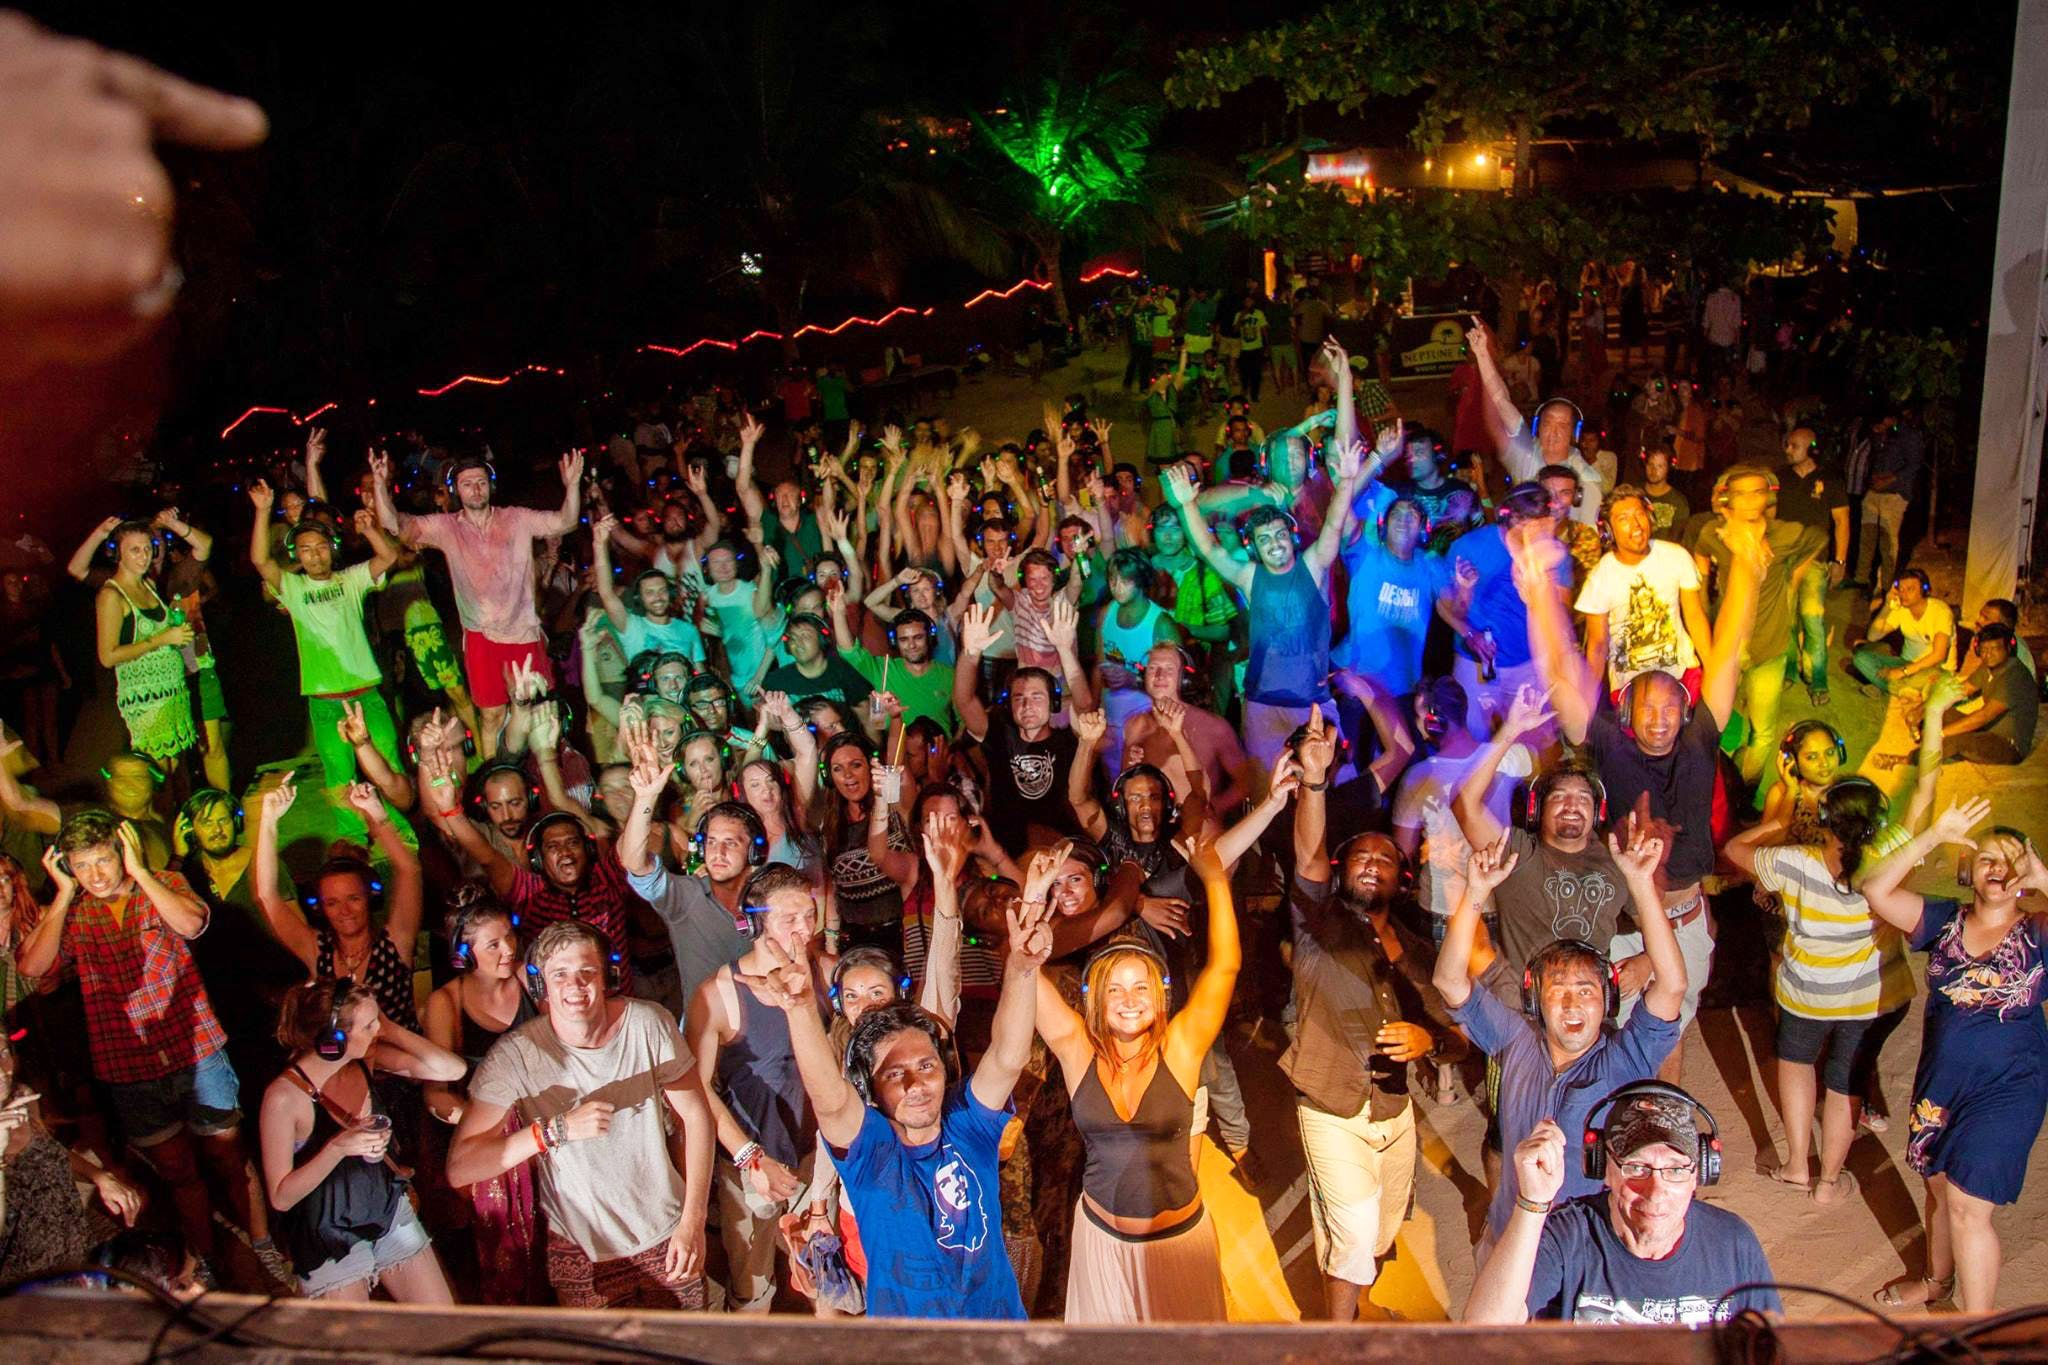 Crowd,People,Audience,Event,Youth,Performance,Party,Cheering,Fun,Leisure